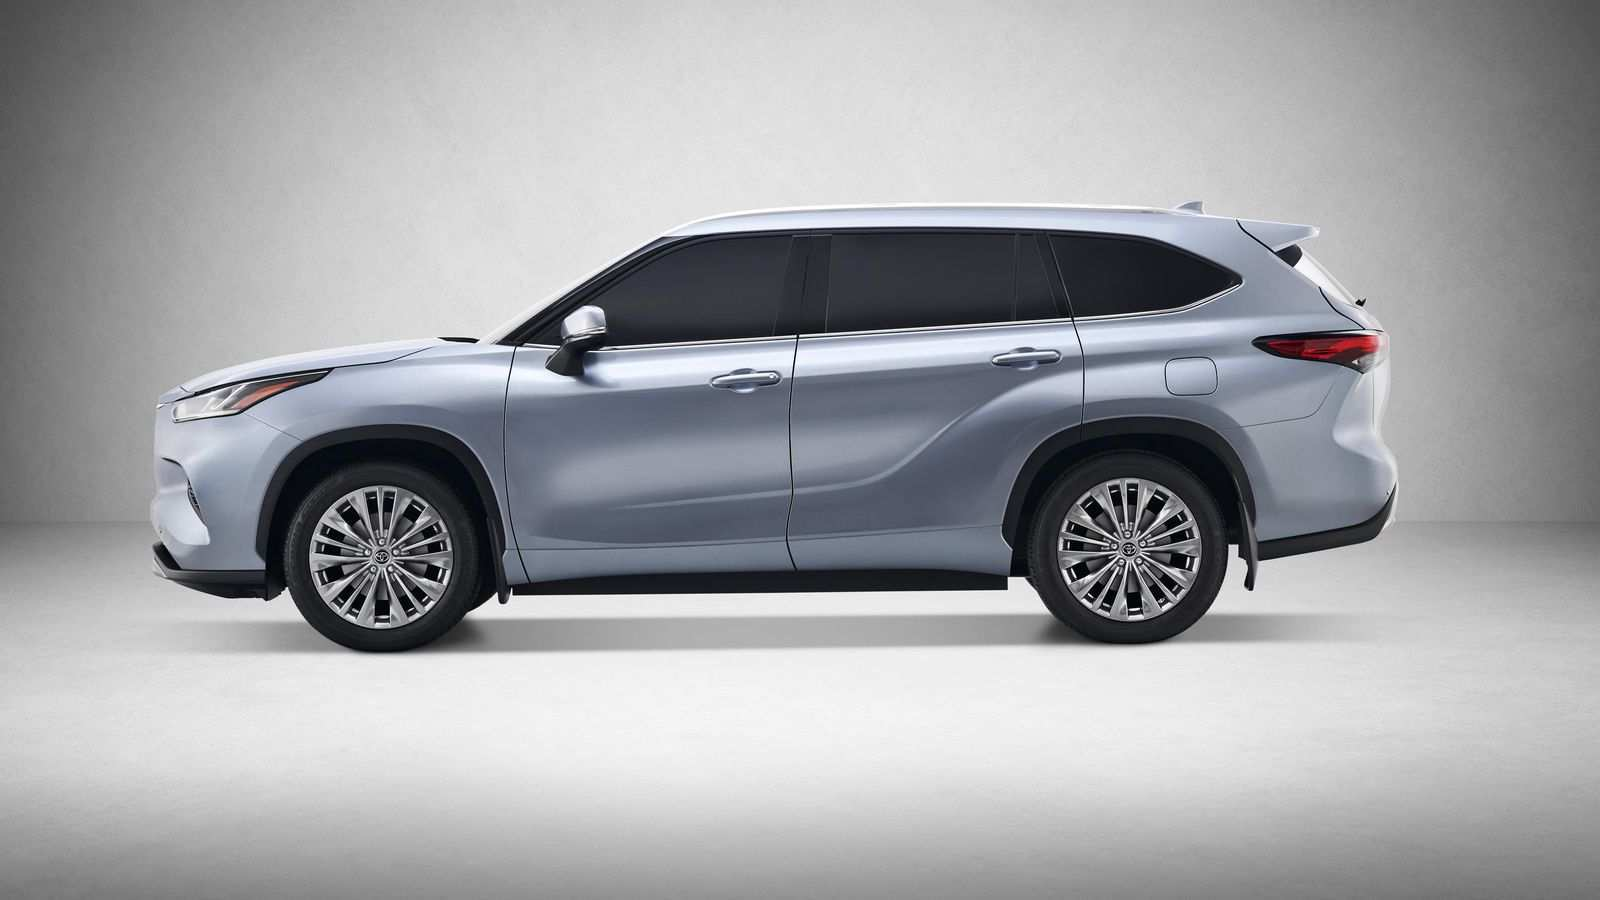 86 Concept of Toyota Kluger New 2020 Configurations with Toyota Kluger New 2020